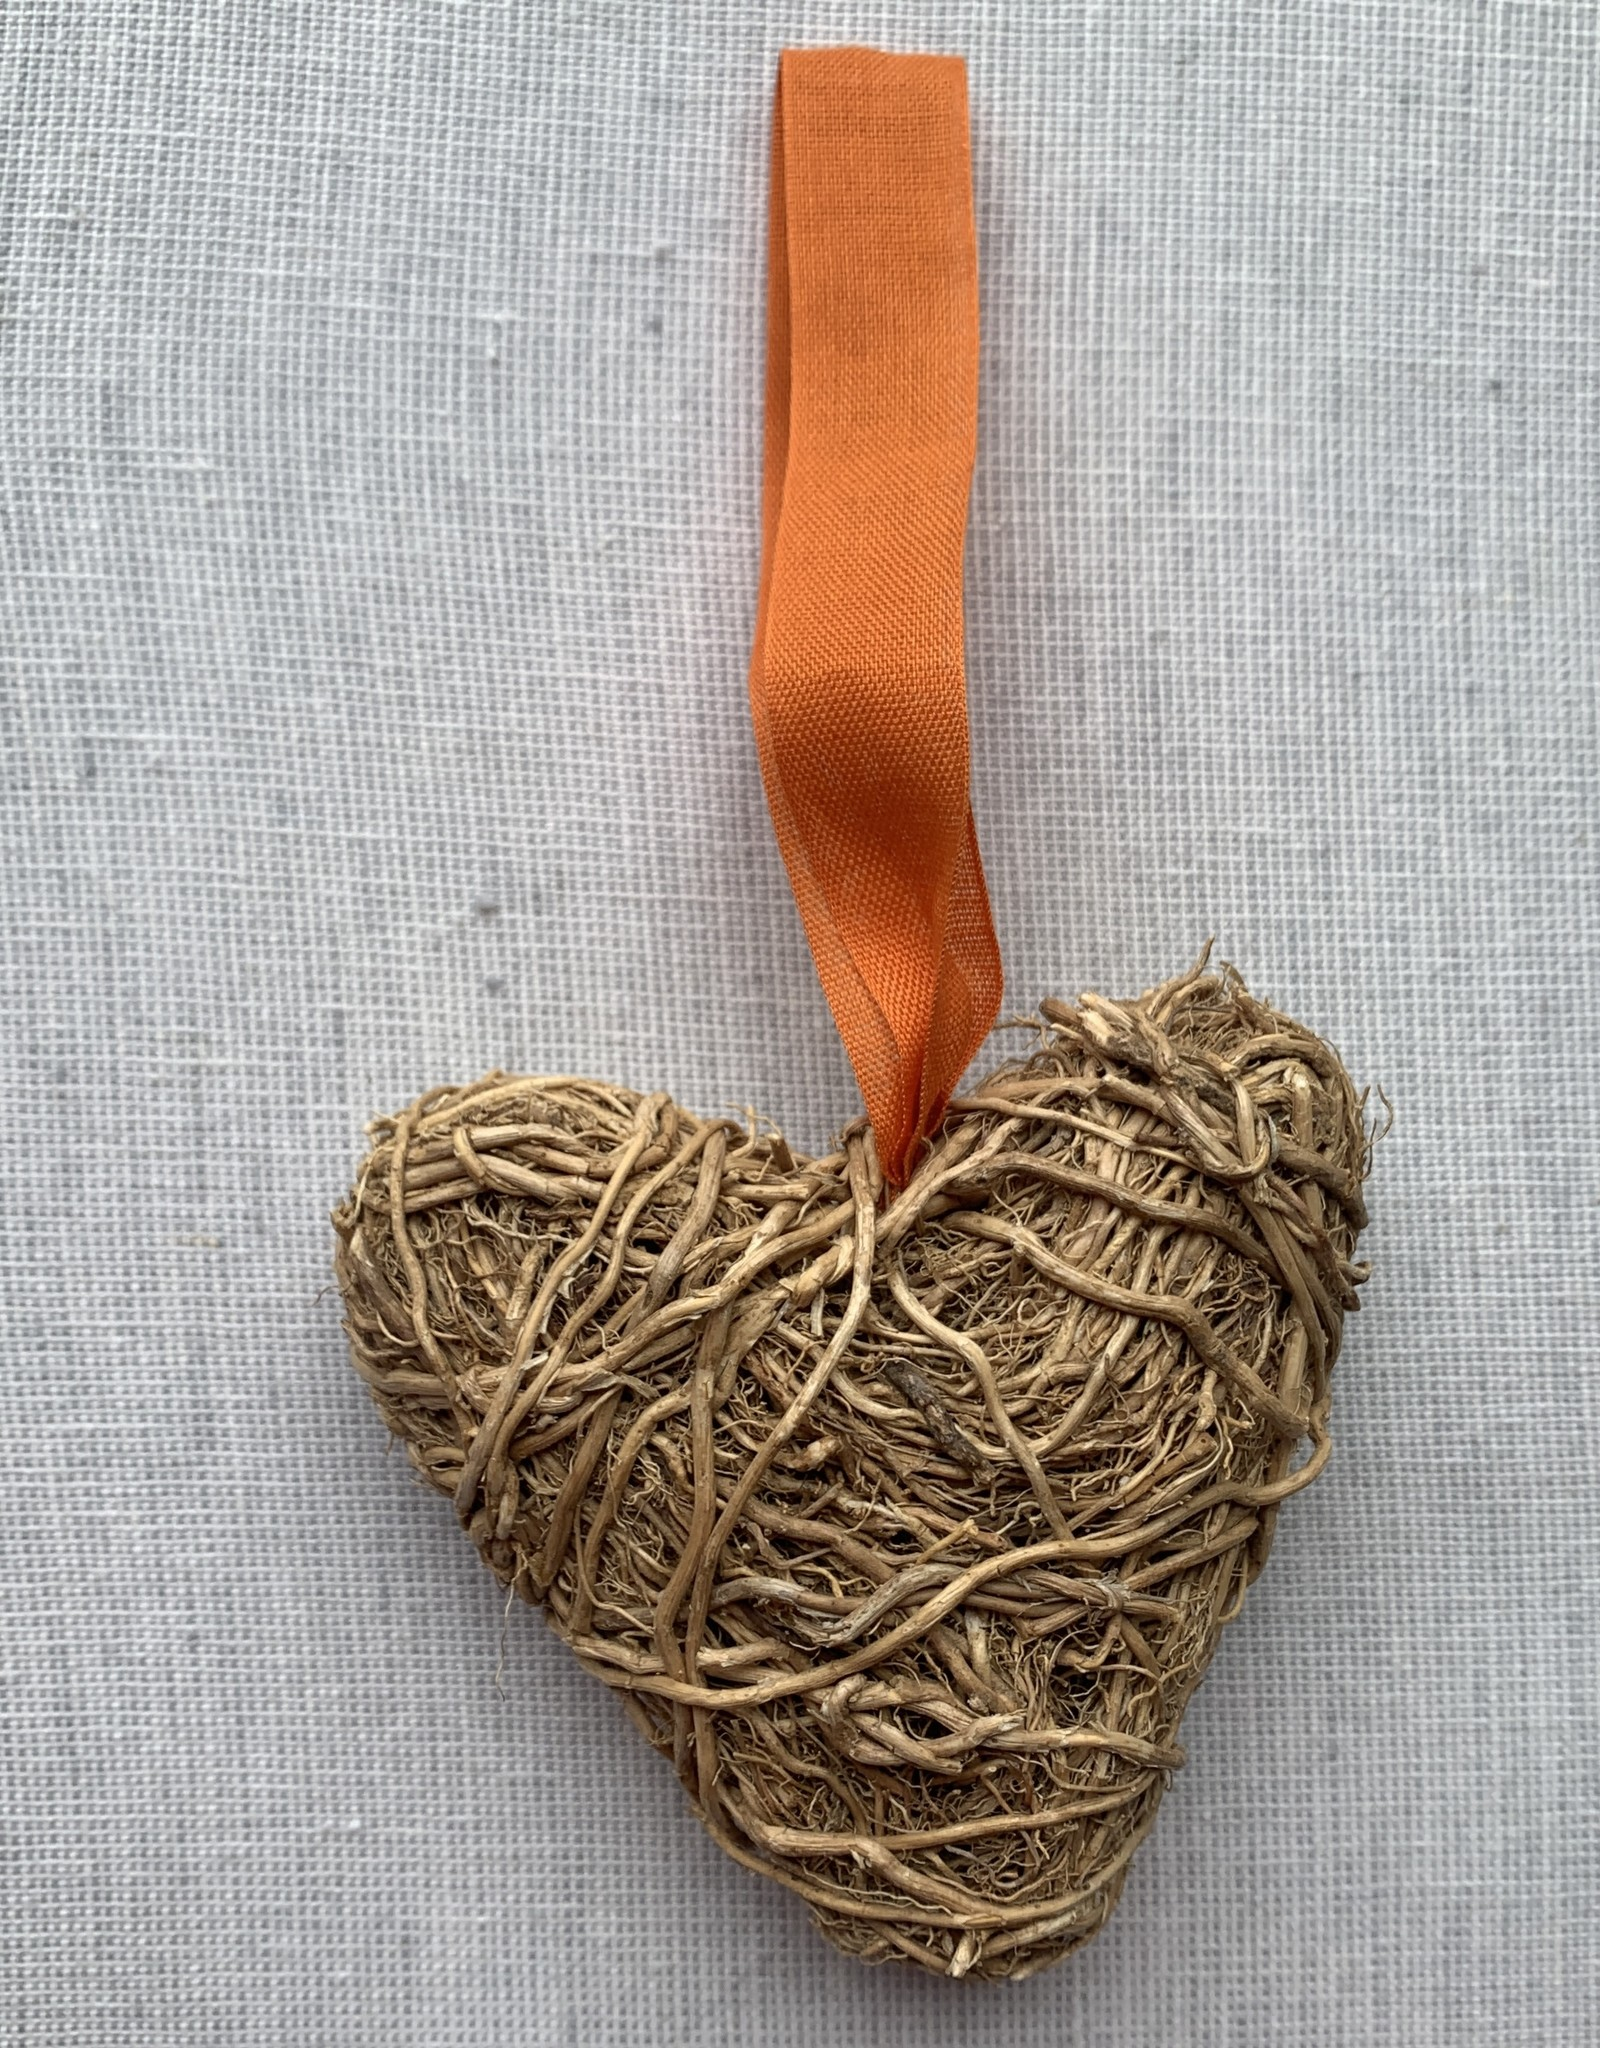 One World Button Supply Vetiver Heart